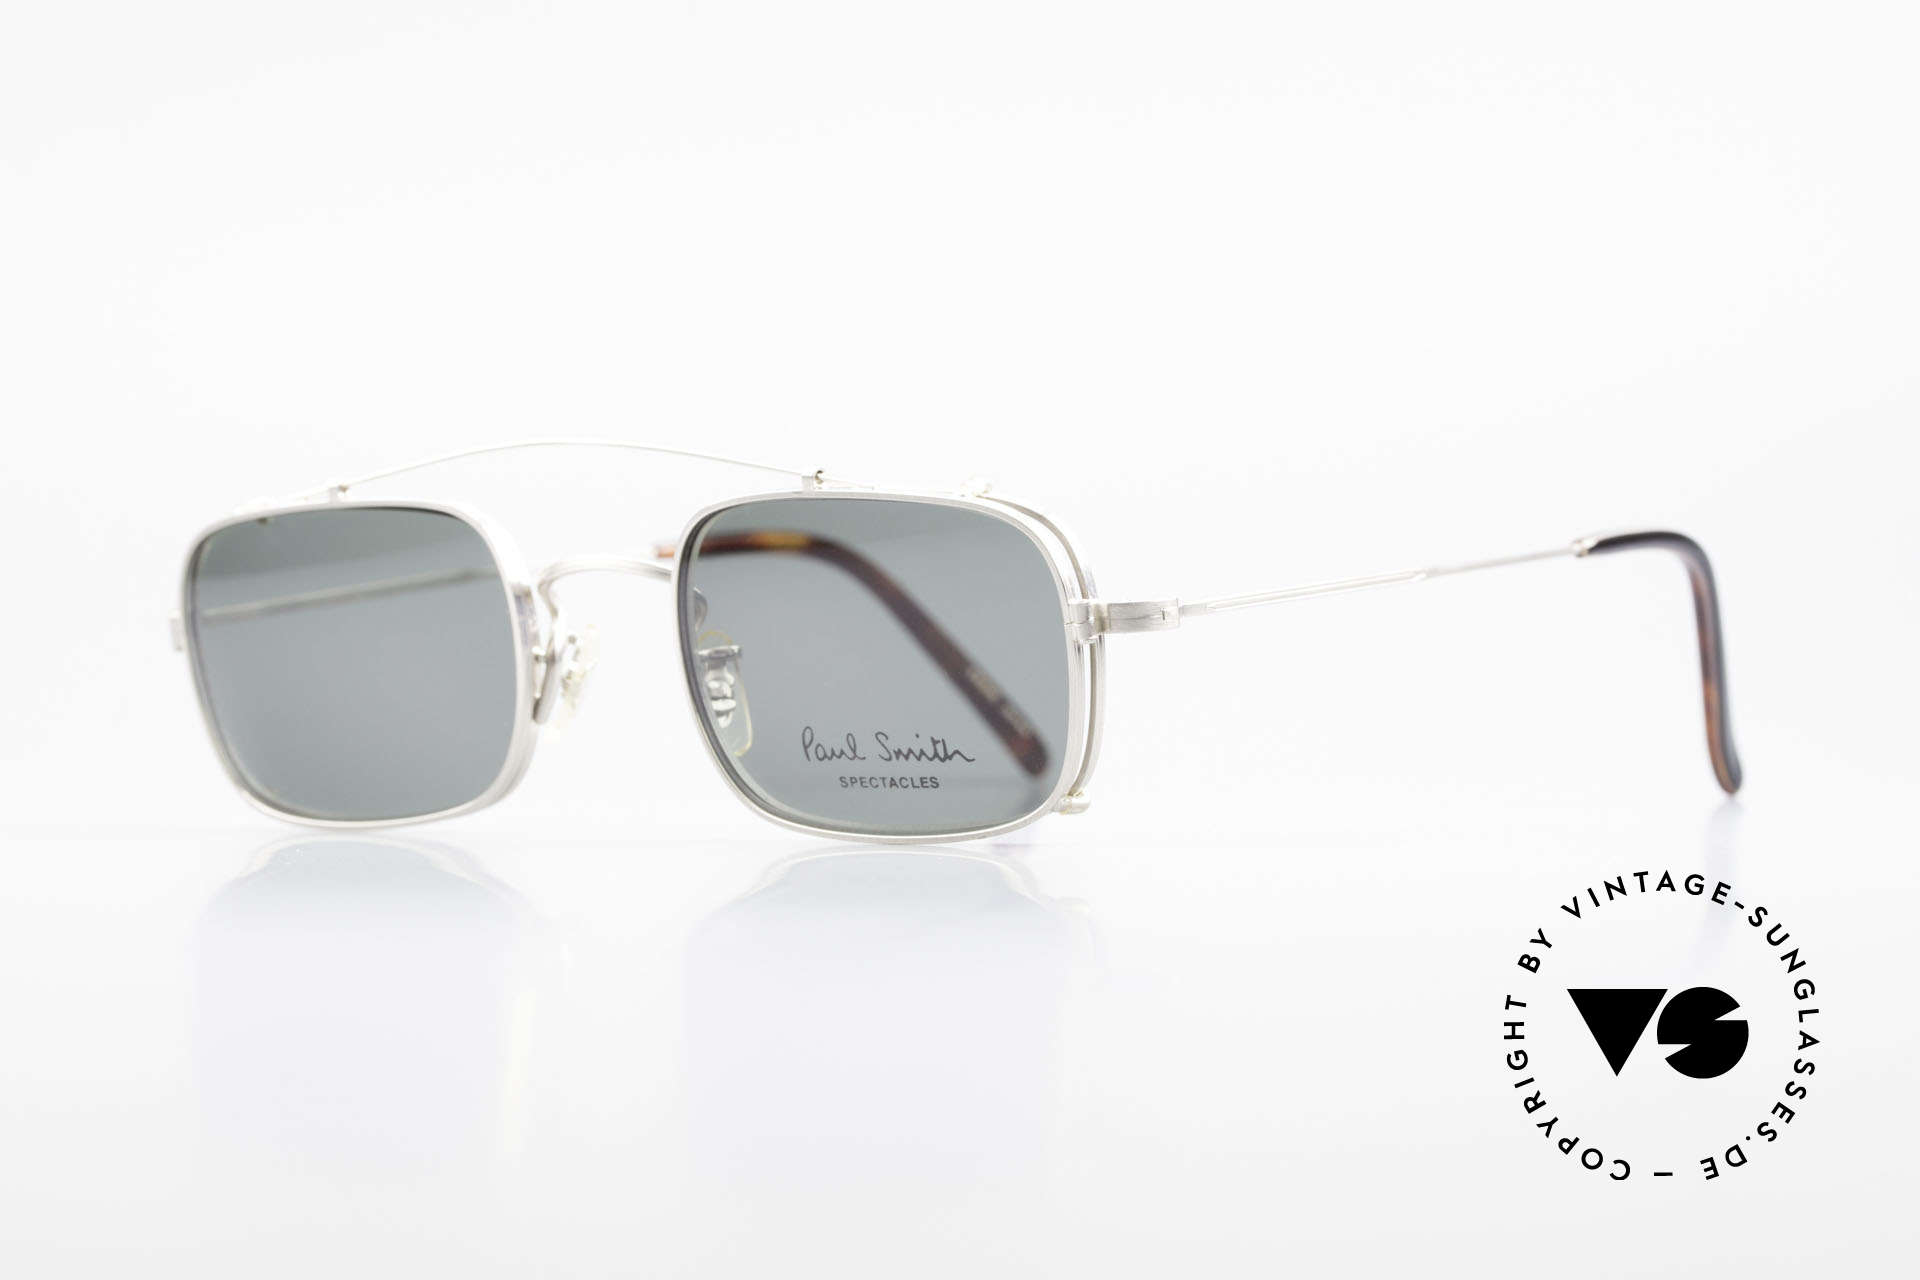 Paul Smith PS101 Square Vintage Frame Clip On, this rare OLD Paul Smith Original is still 'made in Japan', Made for Men and Women